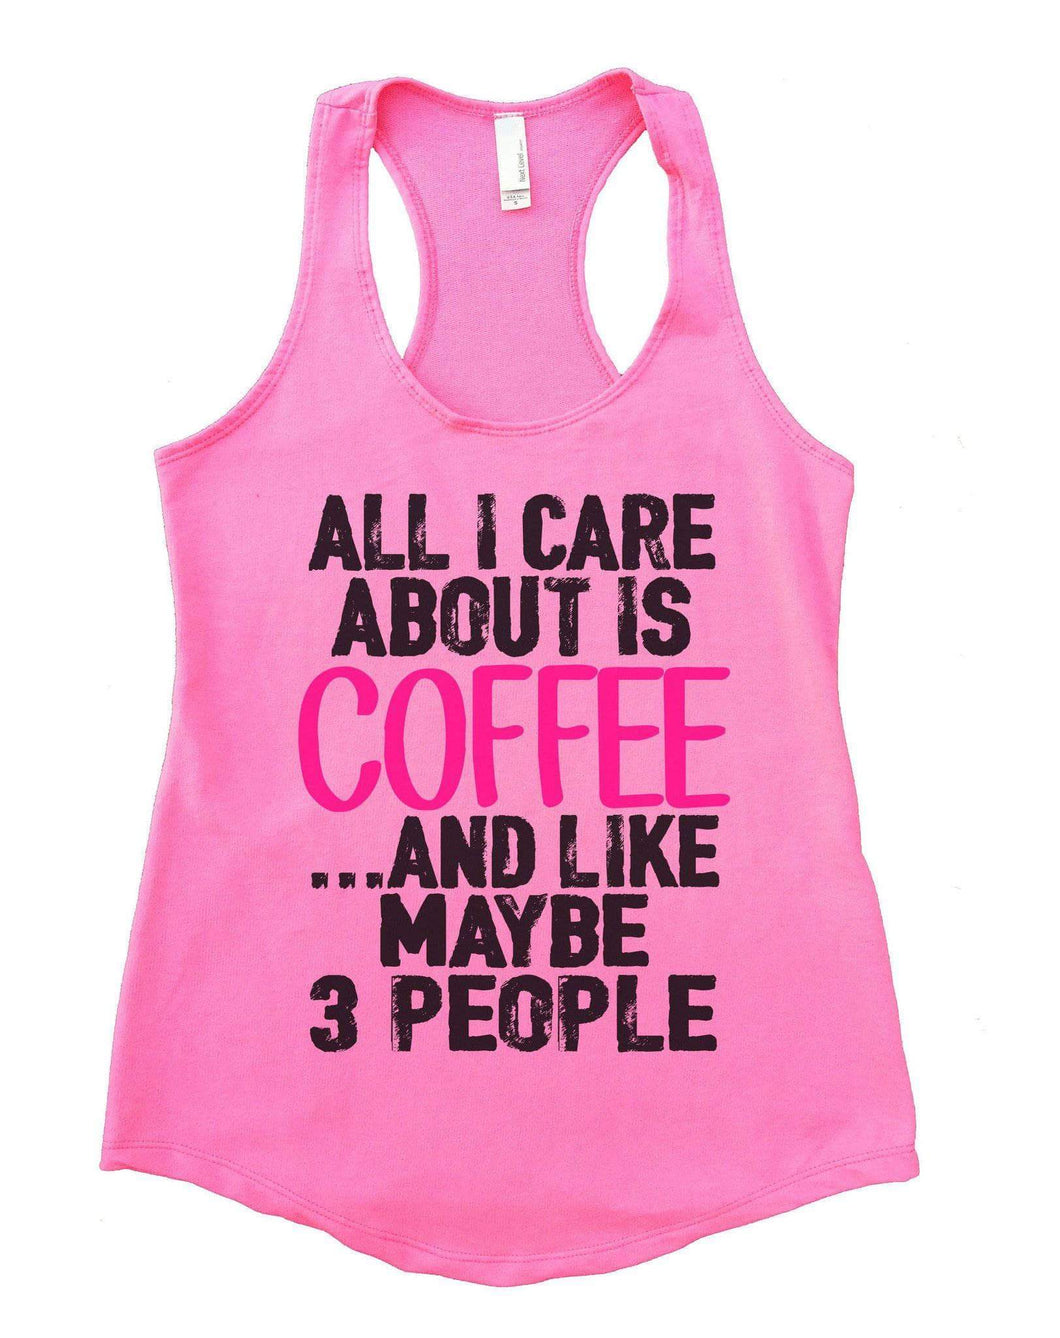 All I Care About Is Coffee And Like Maybe 3 People Womens Workout Tank Top Small Womens Tank Tops Heather Pink